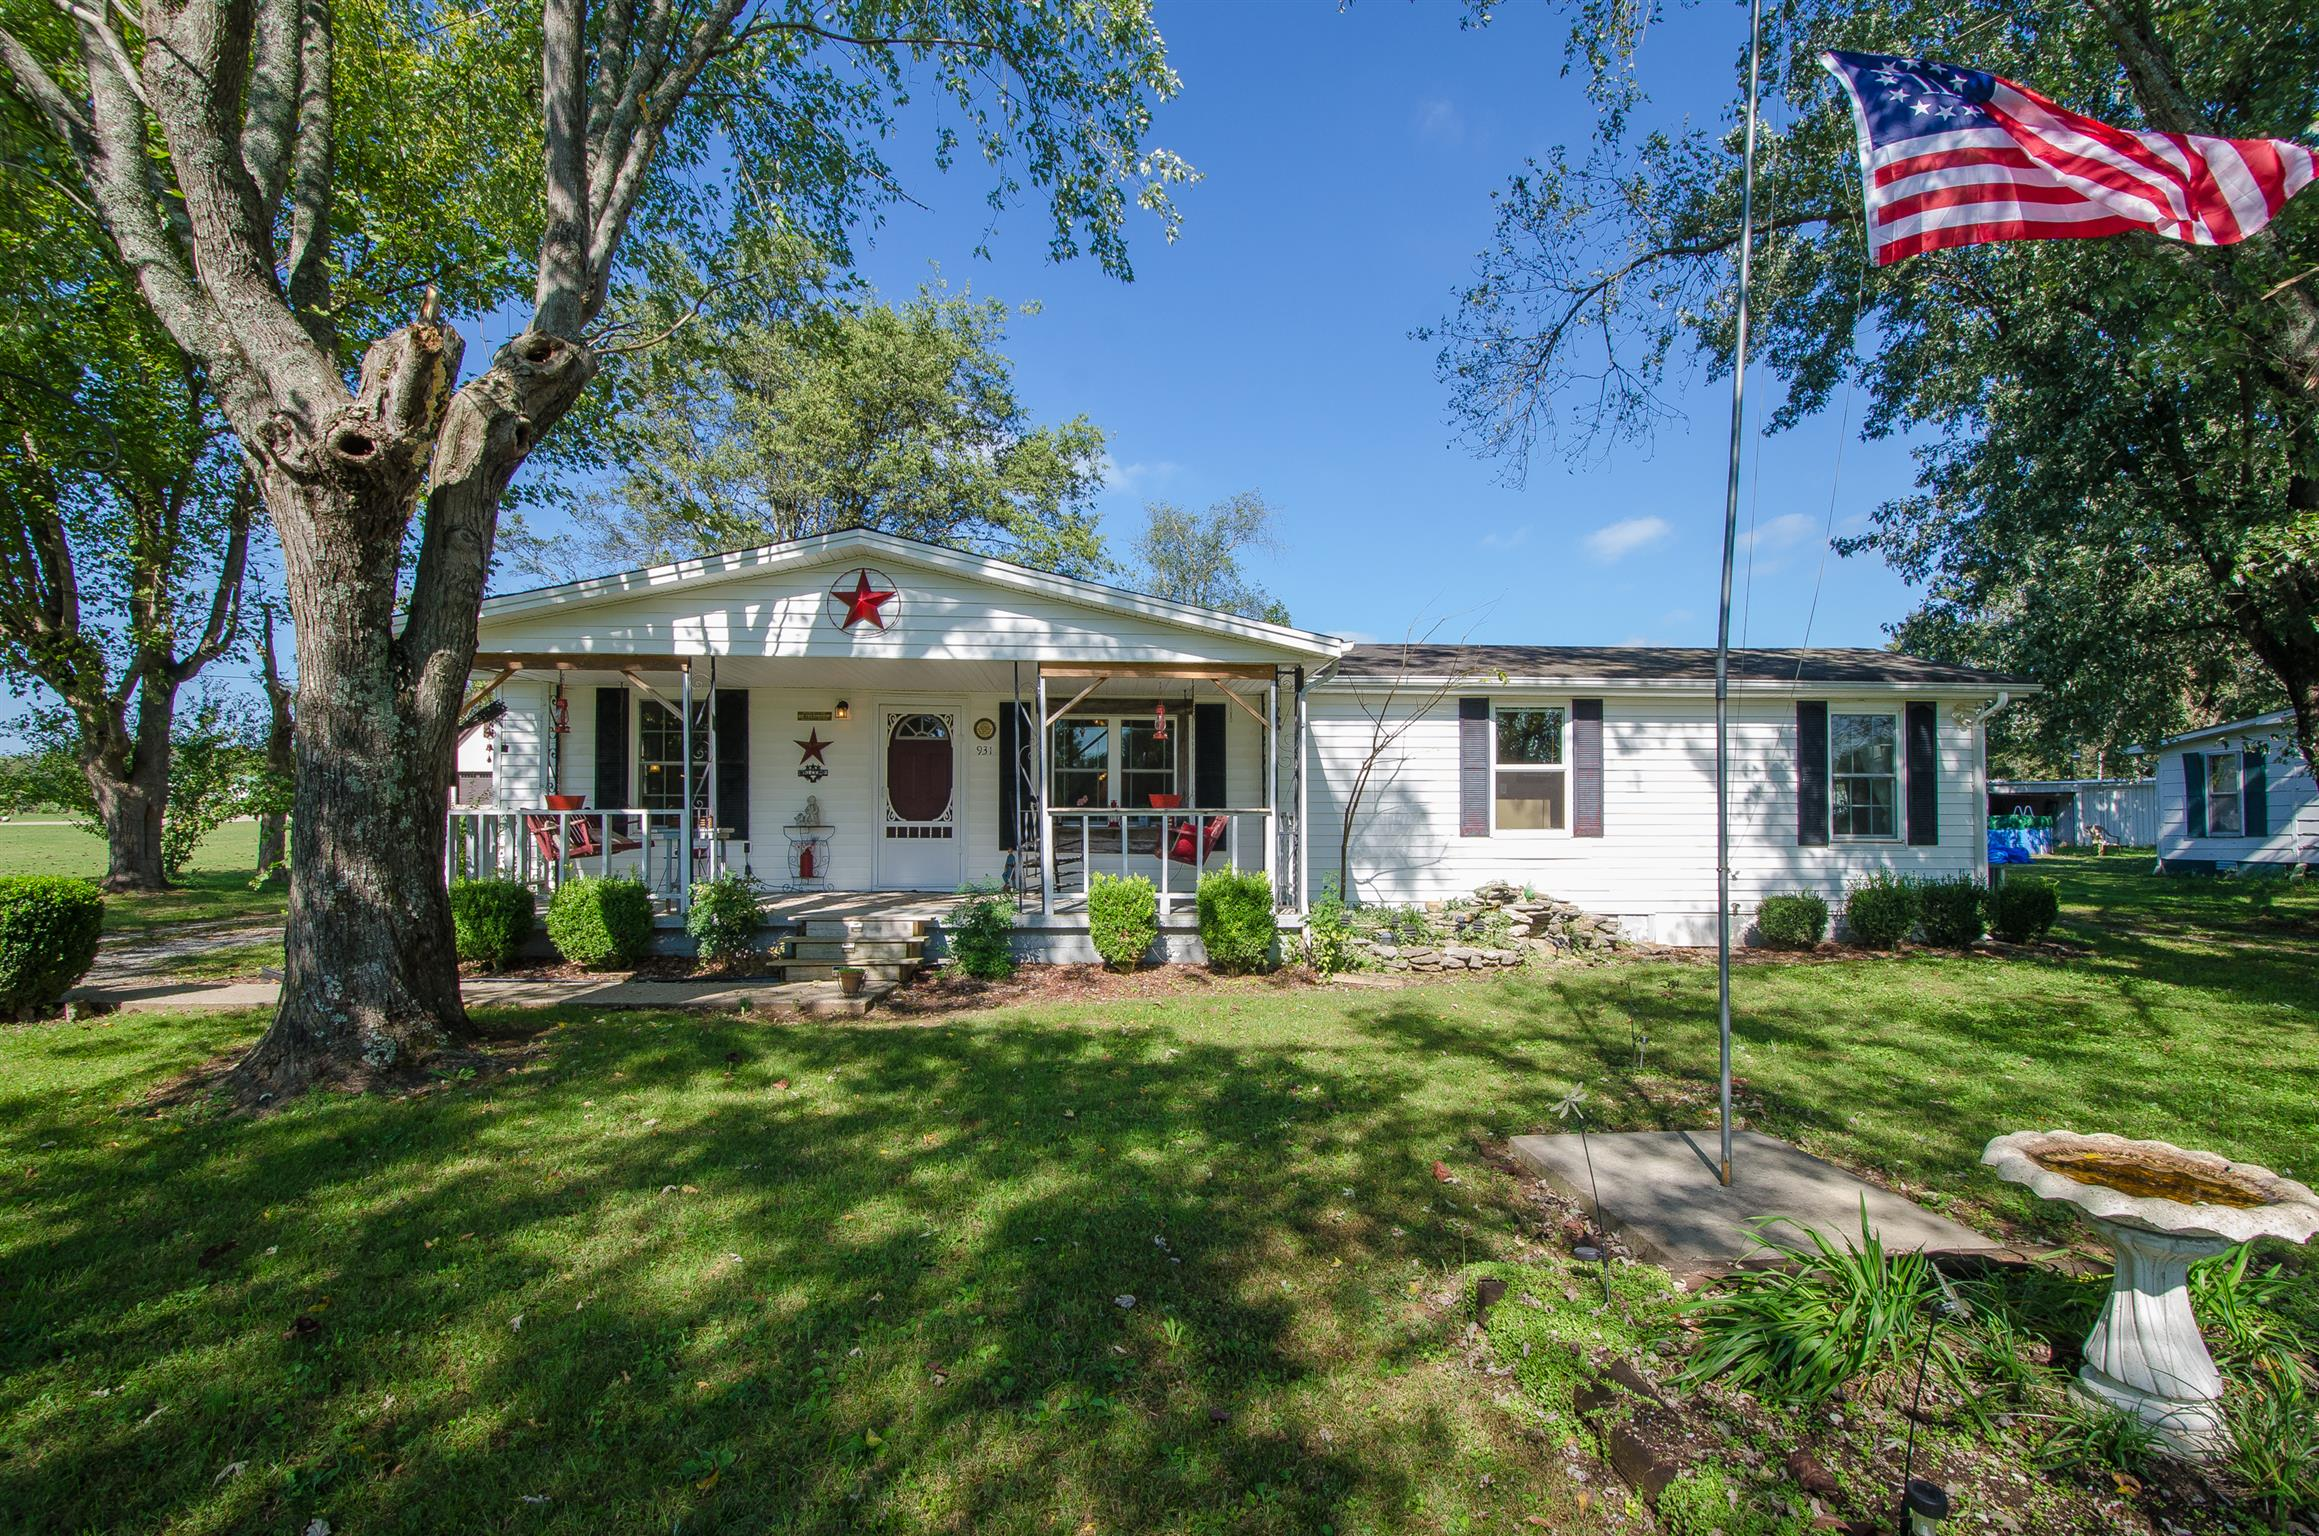 931 Flat Woods Rd, Lebanon in Wilson County County, TN 37090 Home for Sale